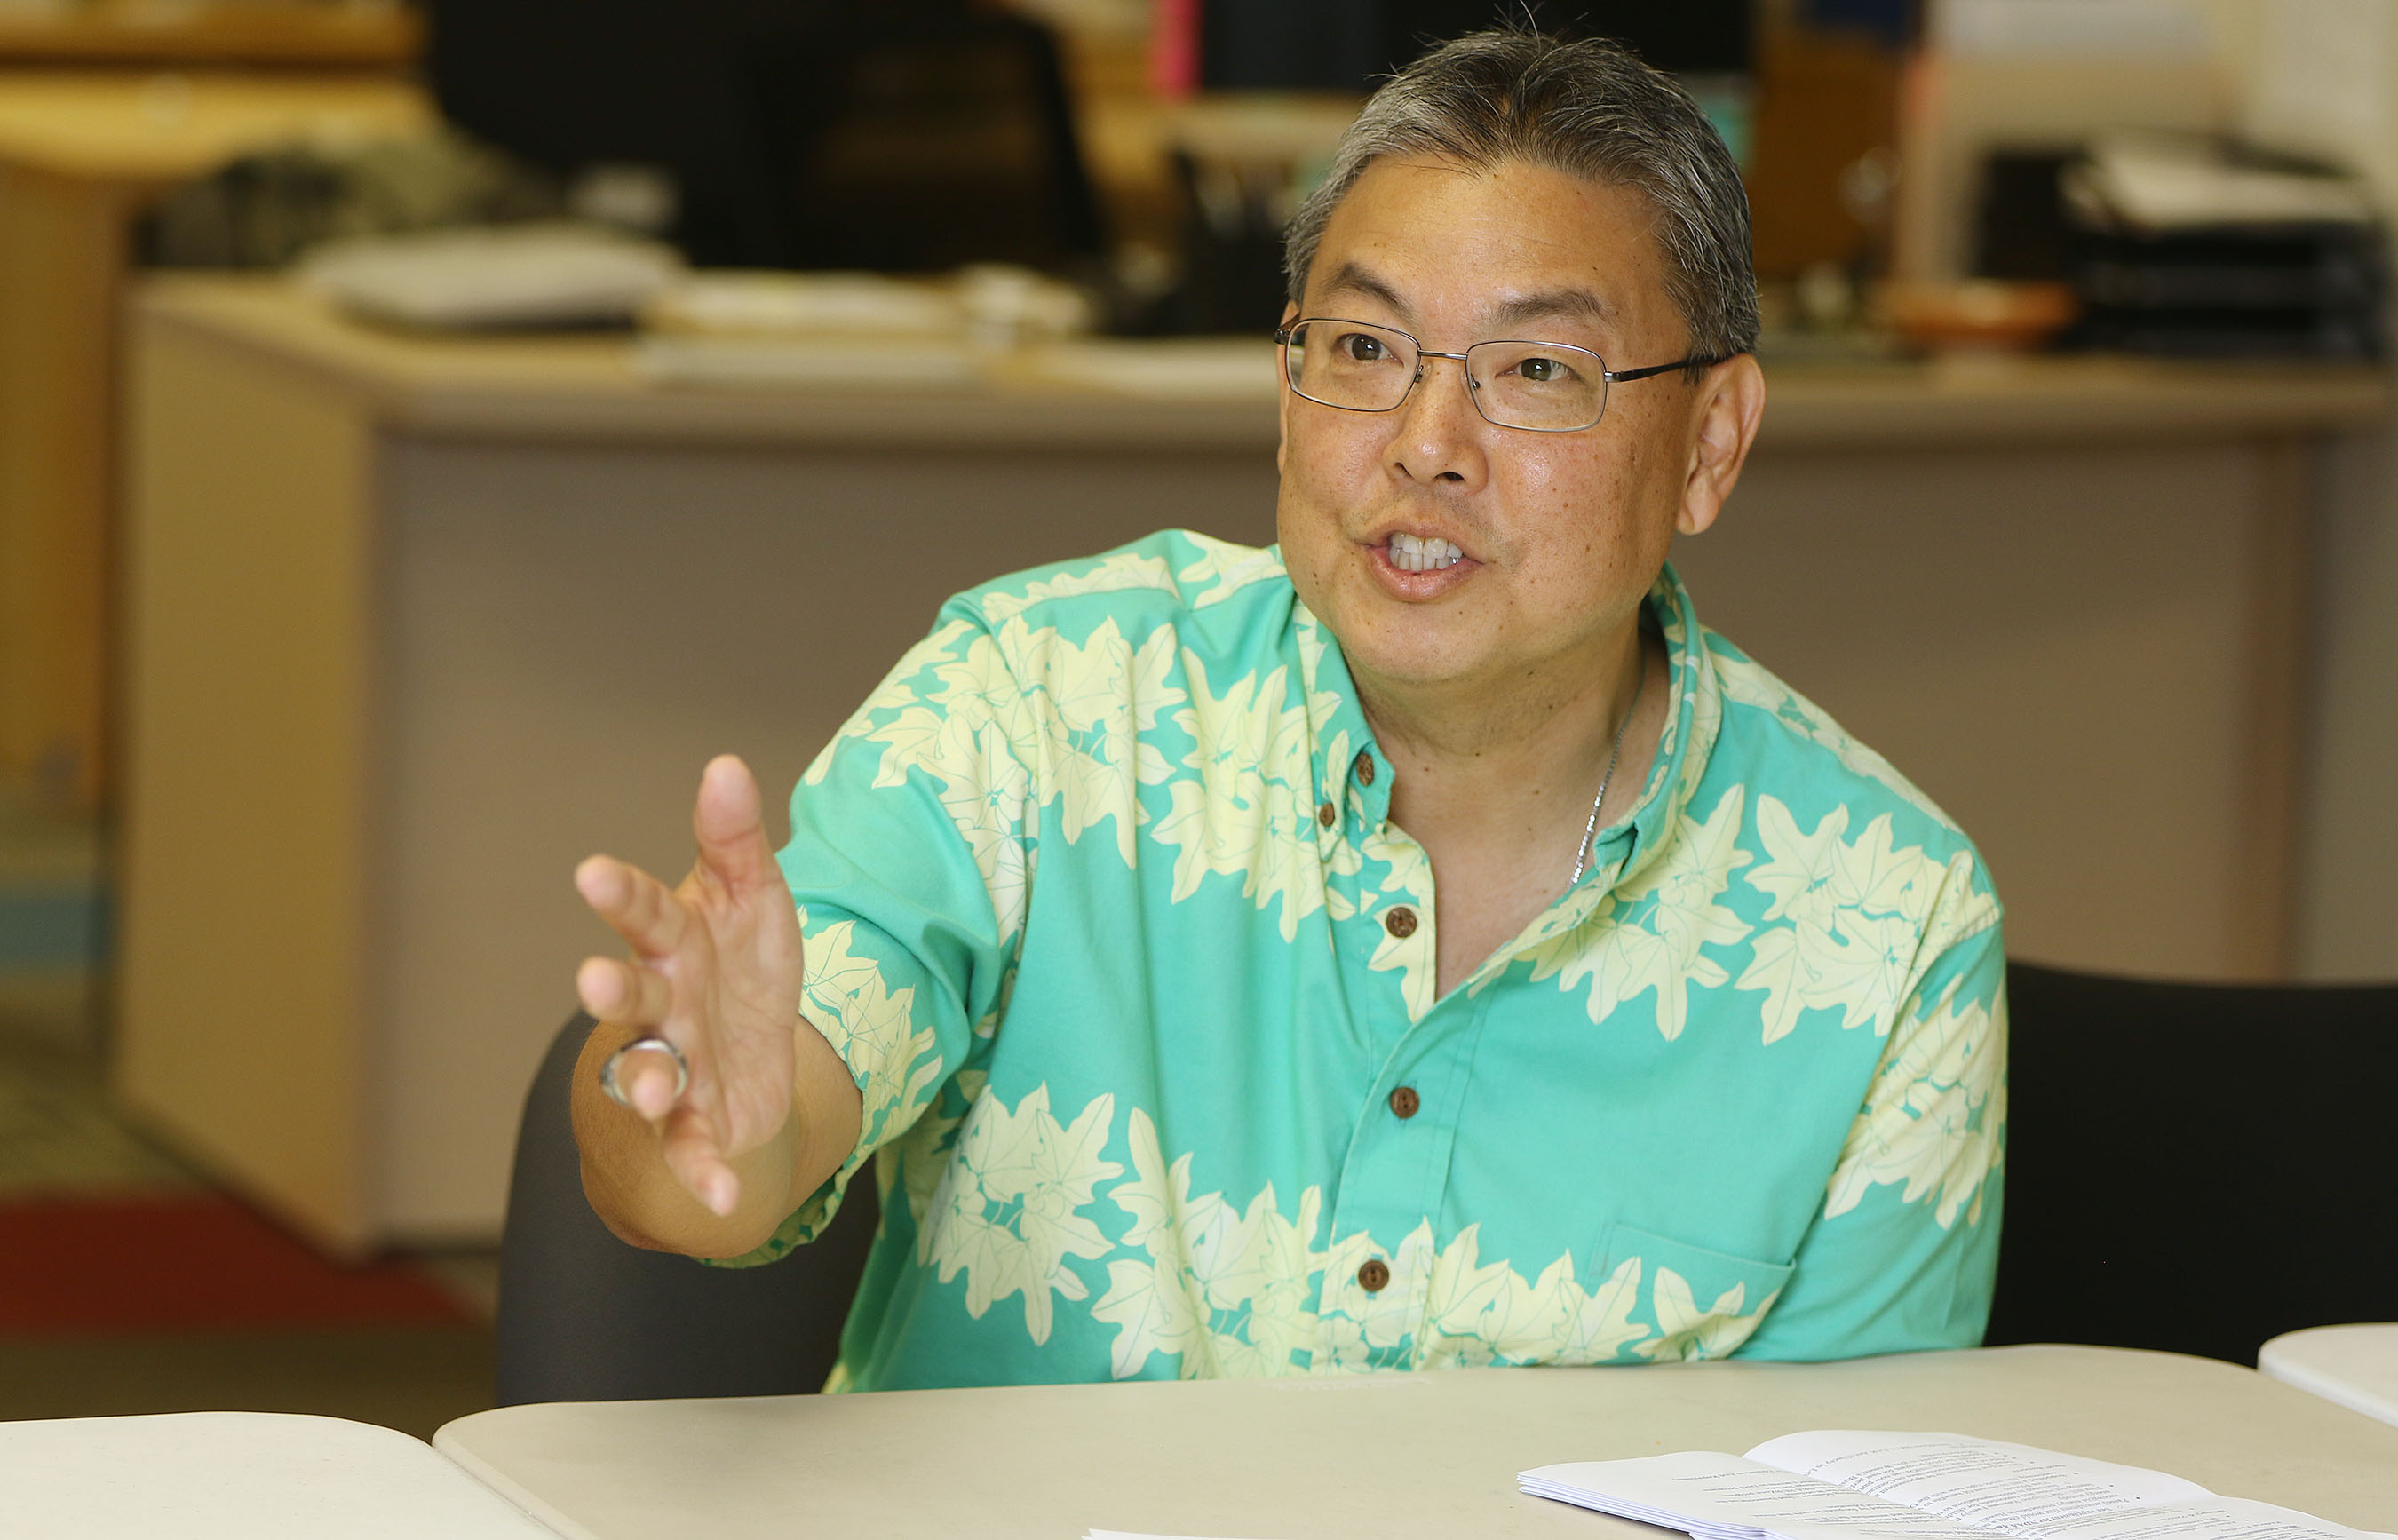 <p><strong>March 2016, Newsroom Visit:</strong> During the last of several visits to the Honolulu Civil Beat office, Takai talks with editorial board members. After having been diagnosed with pancreatic cancer the prior October, he was optimistic about running for re-election. Two months later, he dropped out of the race. He died at his Honolulu home today, July 20, 2016.</p>